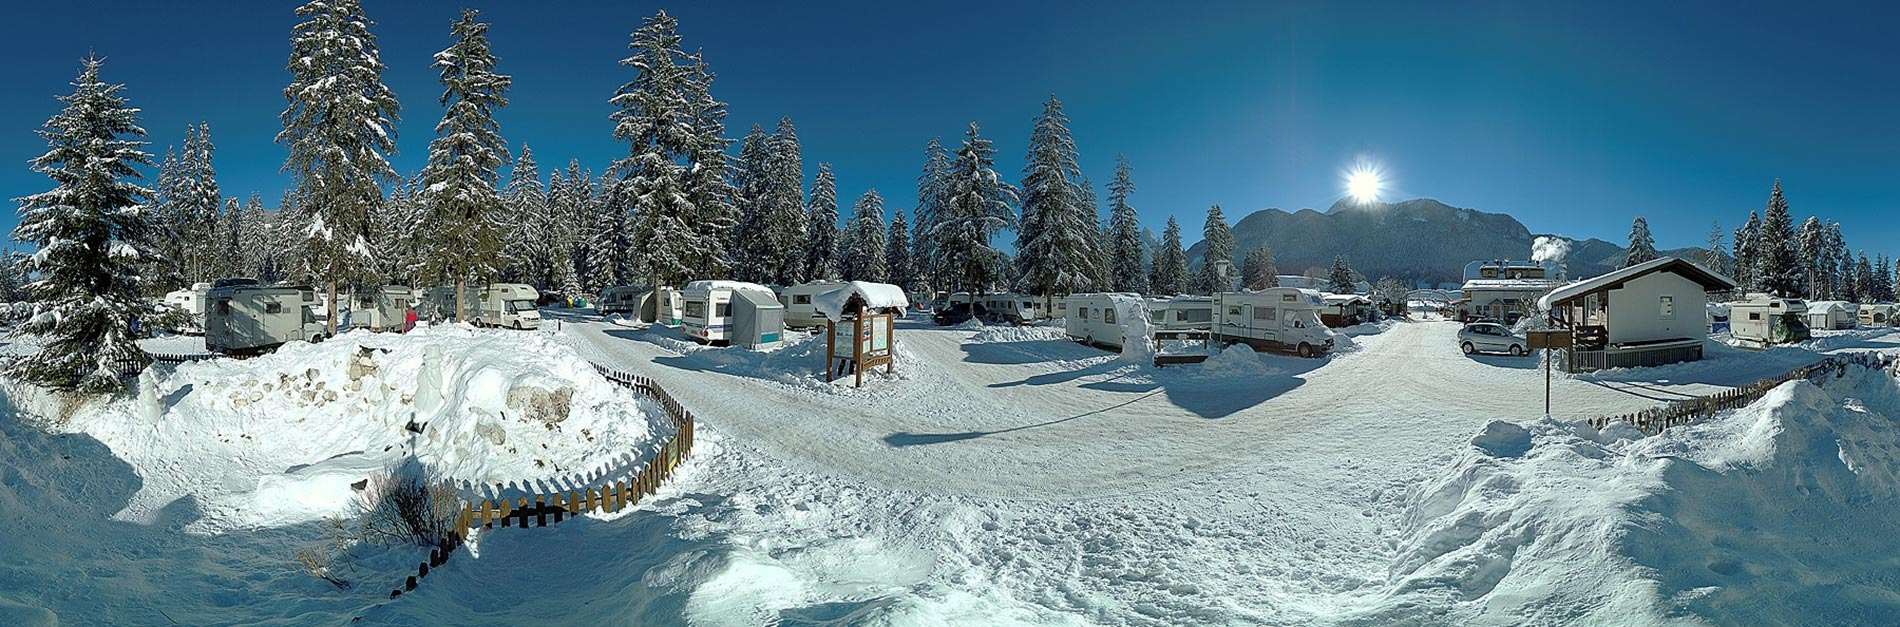 Camping Olympia in inverno